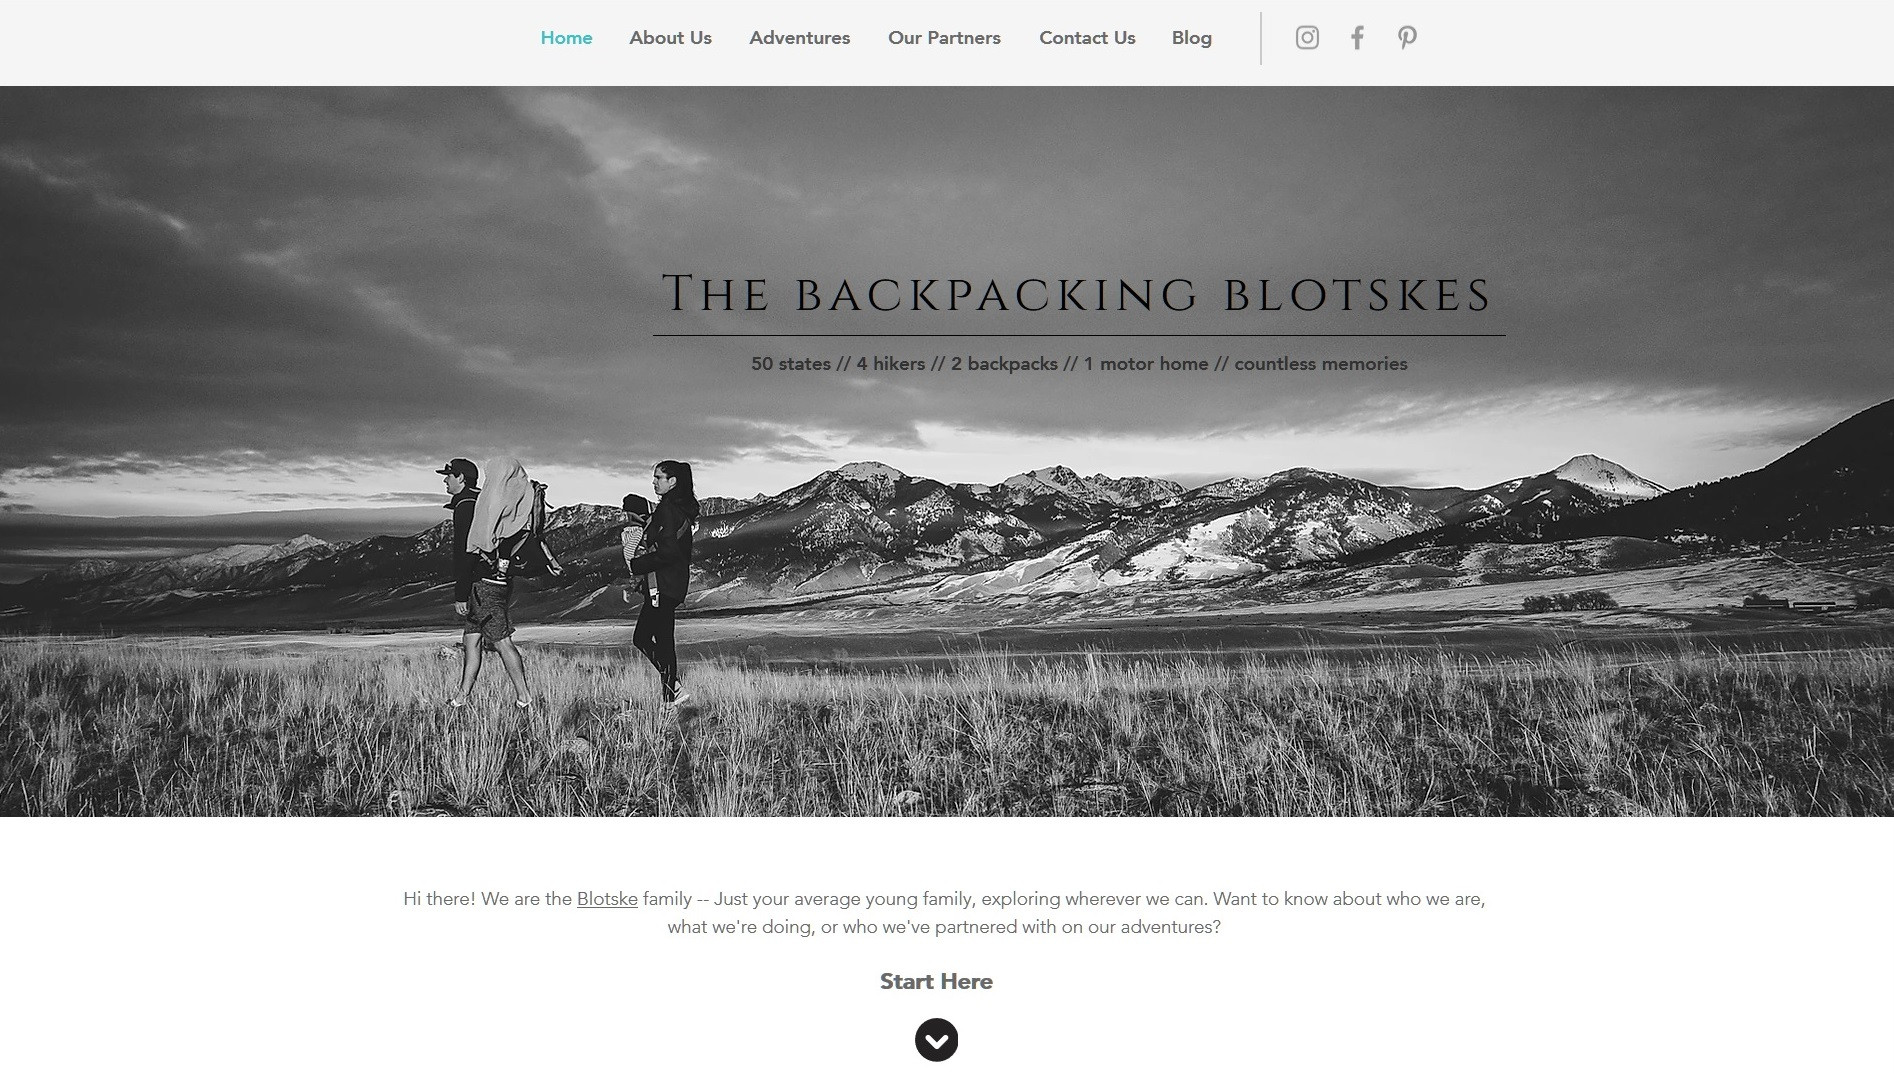 The Backpacking Blotskes